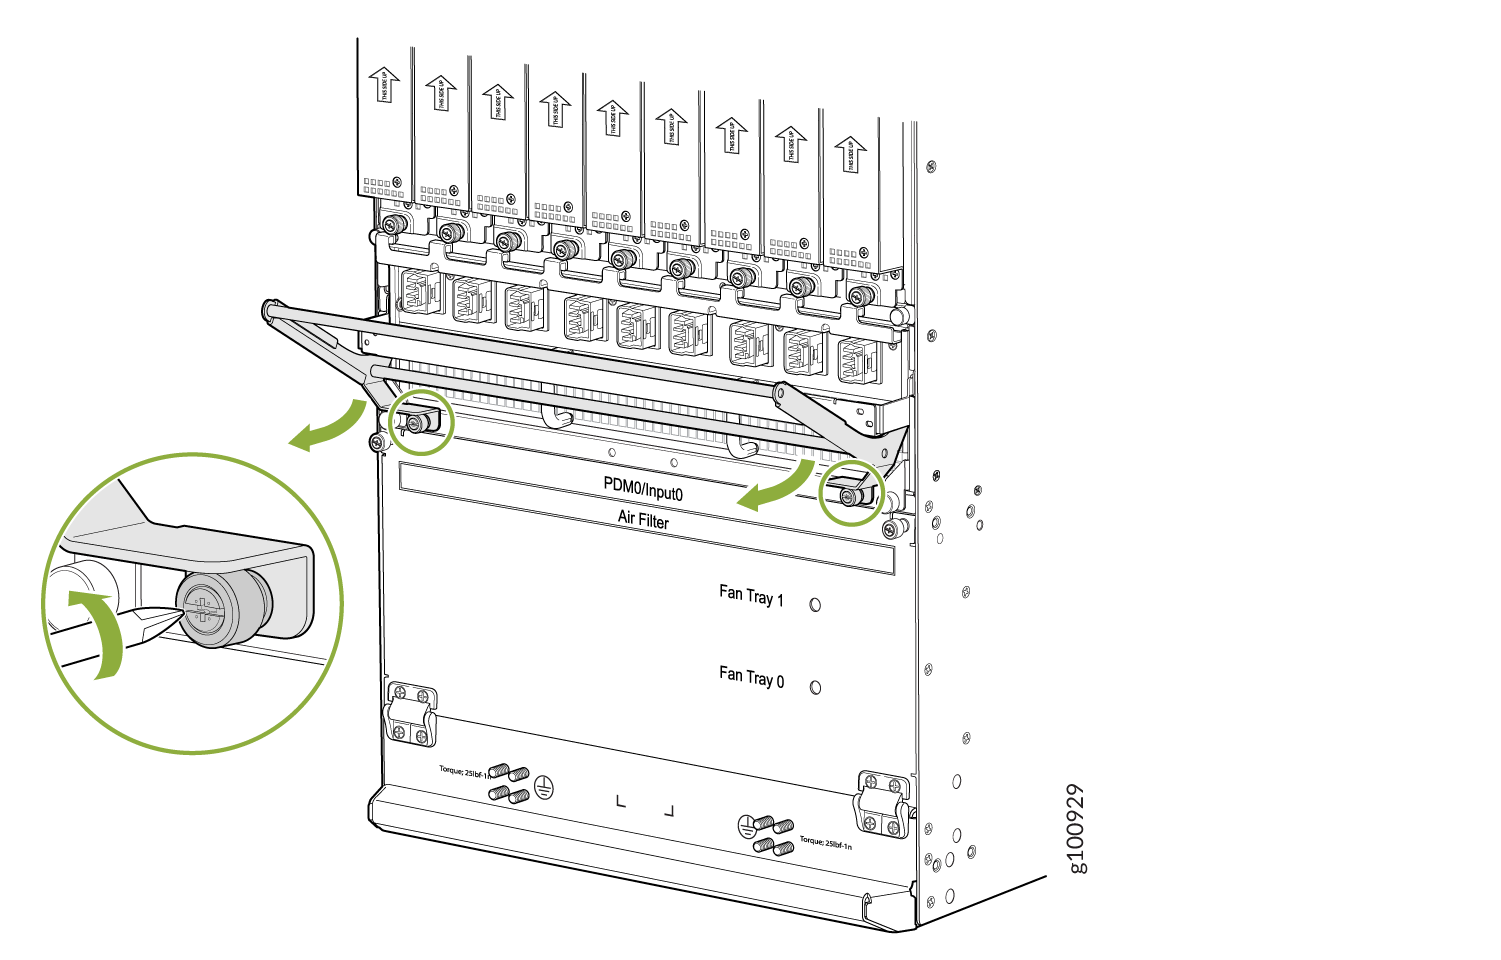 Removing the DC Cable Manager for DC PDM (240 V China) and the Universal (HVAC/HVDC) PDM